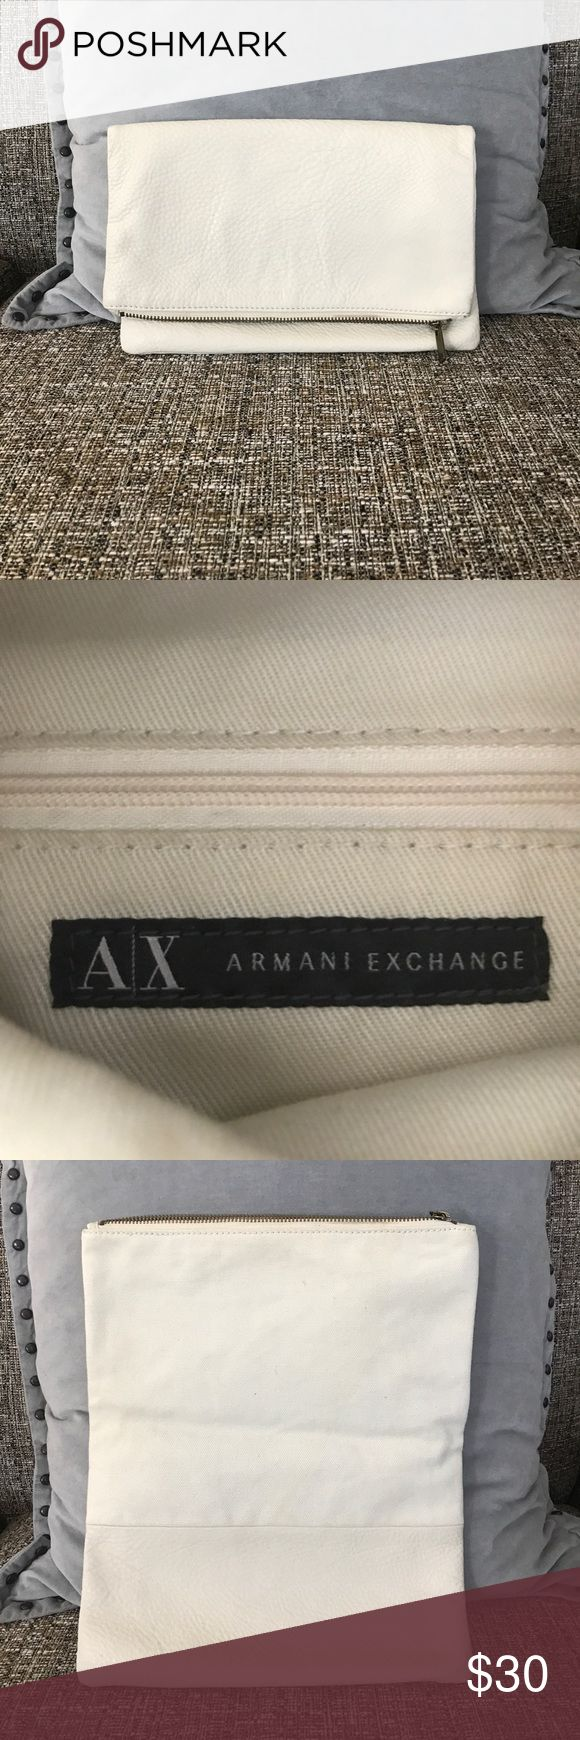 Armani Exchange Fold Over Clutch Gently used neutral clutch. Zipper close. A/X Armani Exchange Bags Clutches & Wristlets